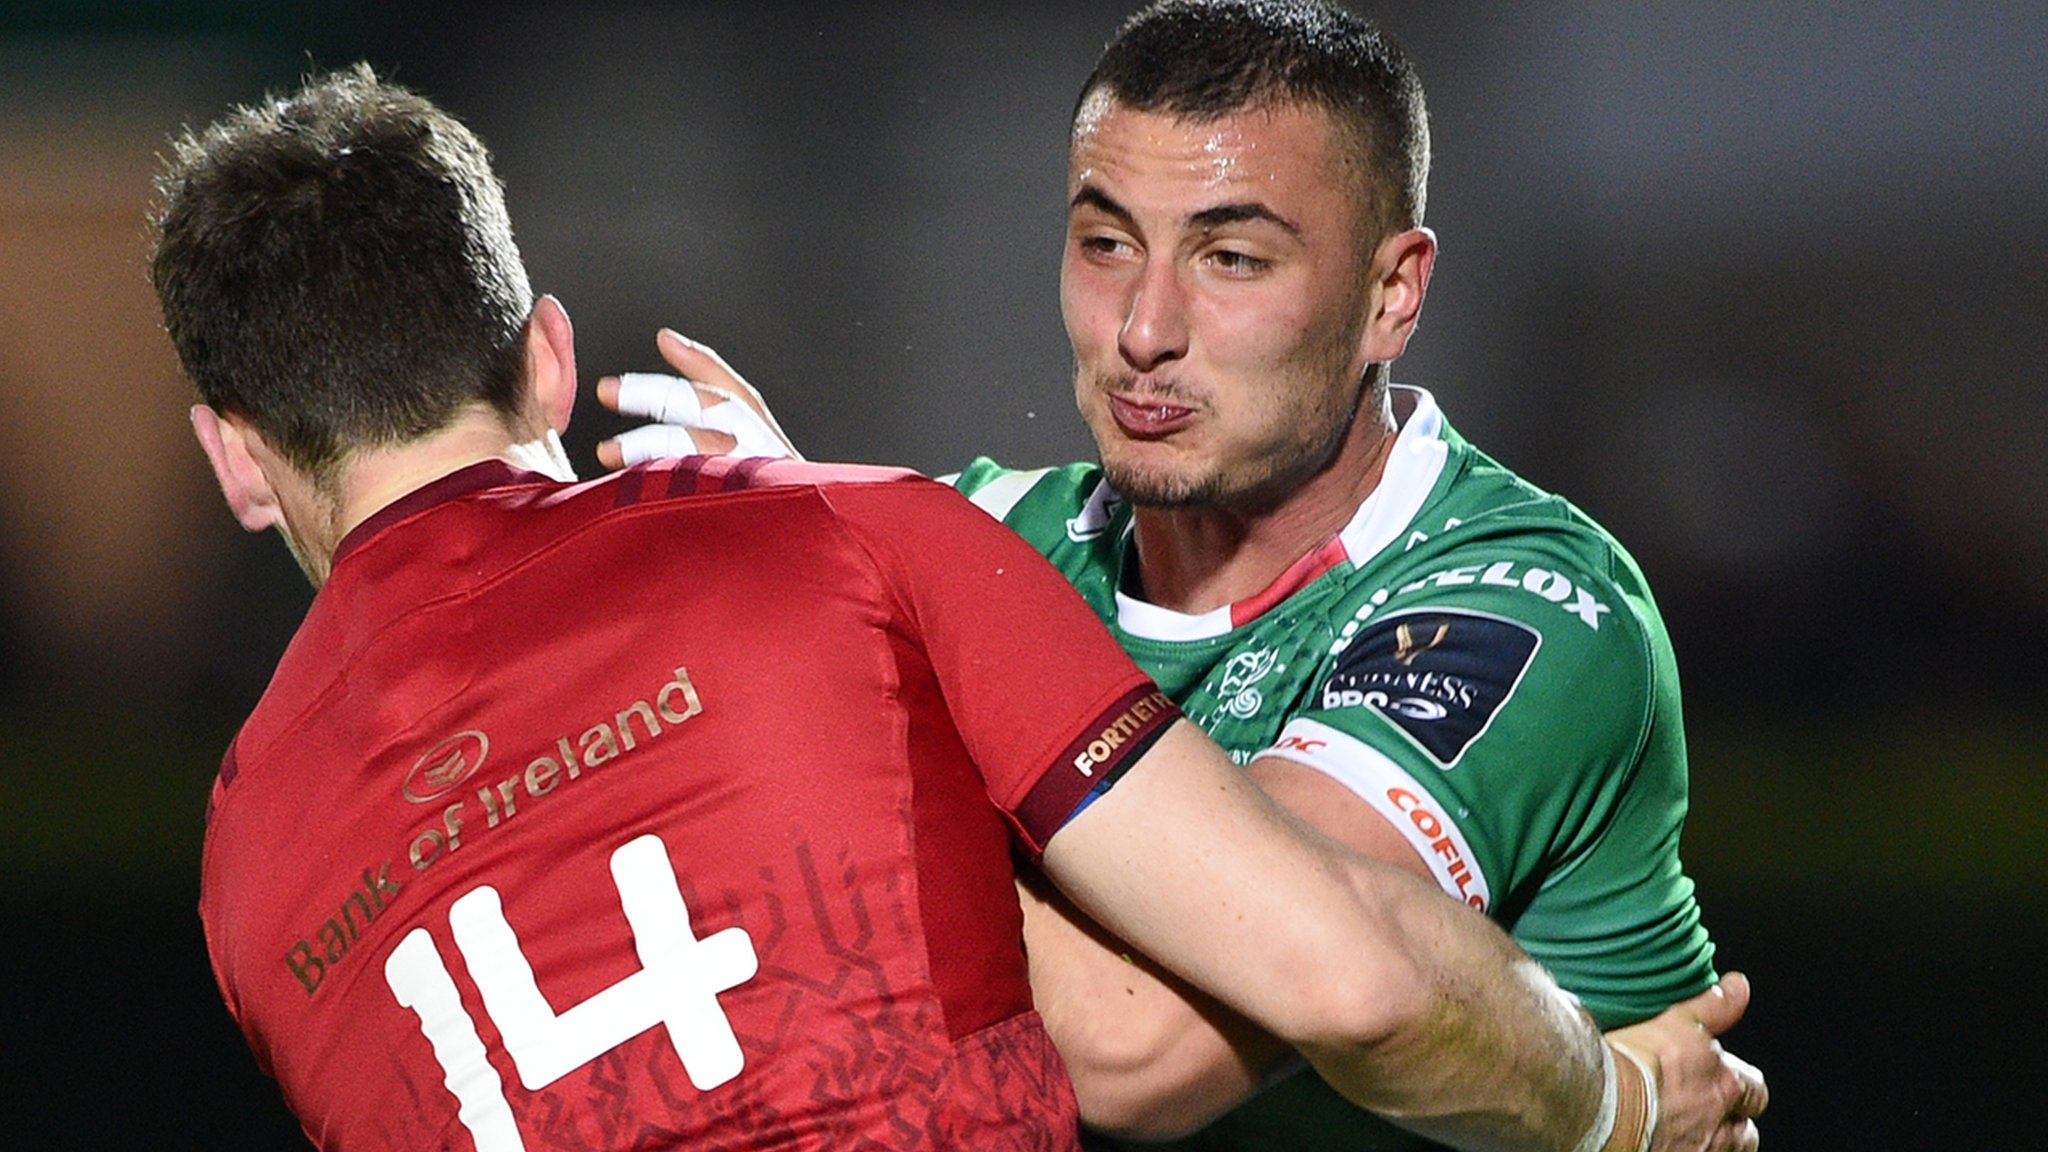 Pro14: Bonus-point 37-28 win sends Munster top of Conference A table